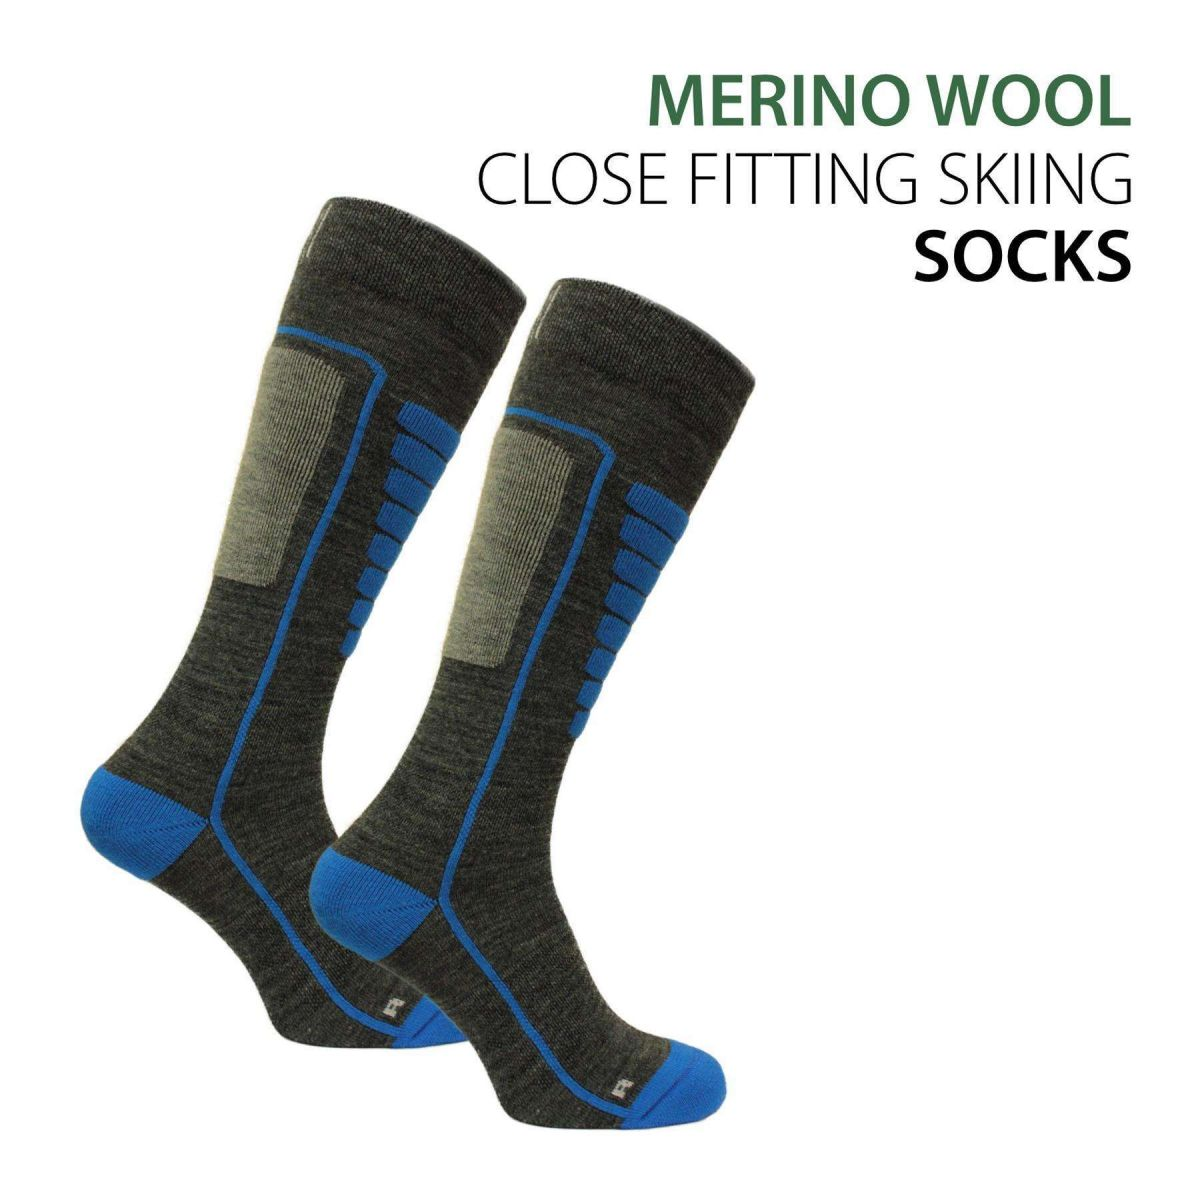 Norfolk Light Weight Merino Wool Skiing Socks - Courchevel